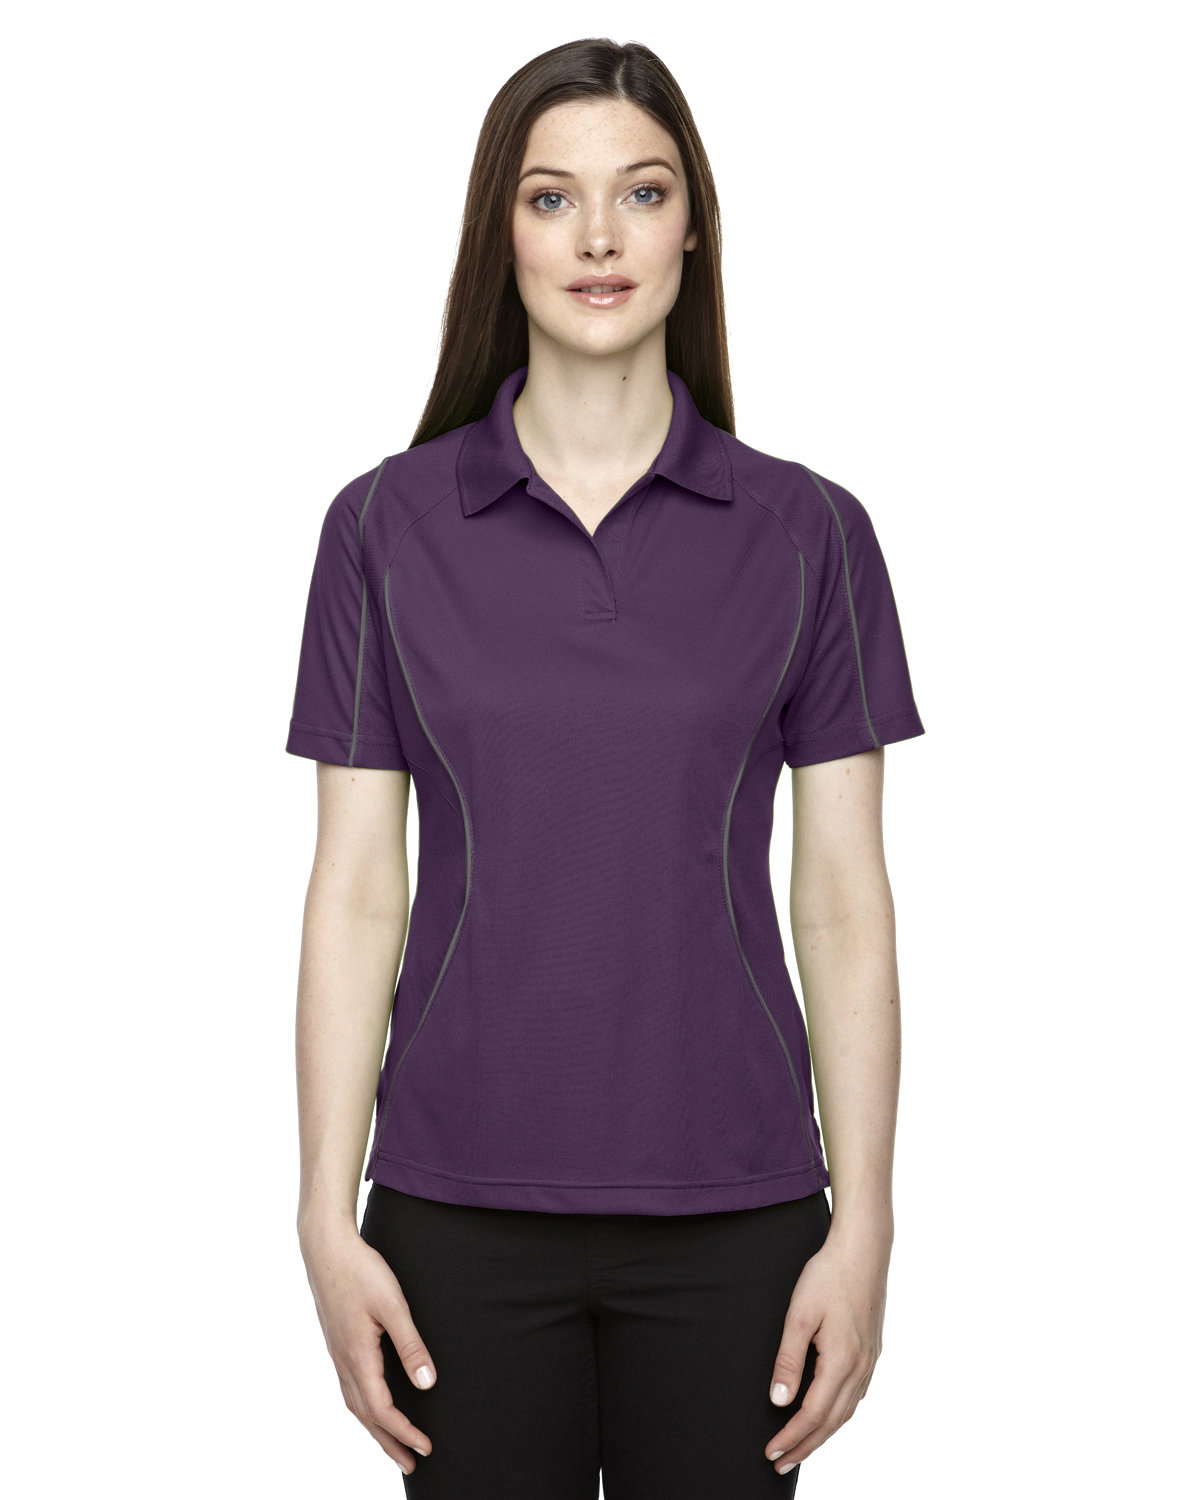 Extreme Ladies' Eperformance™ Velocity Snag Protection Colorblock Polo with Piping MULBERRY PURPLE